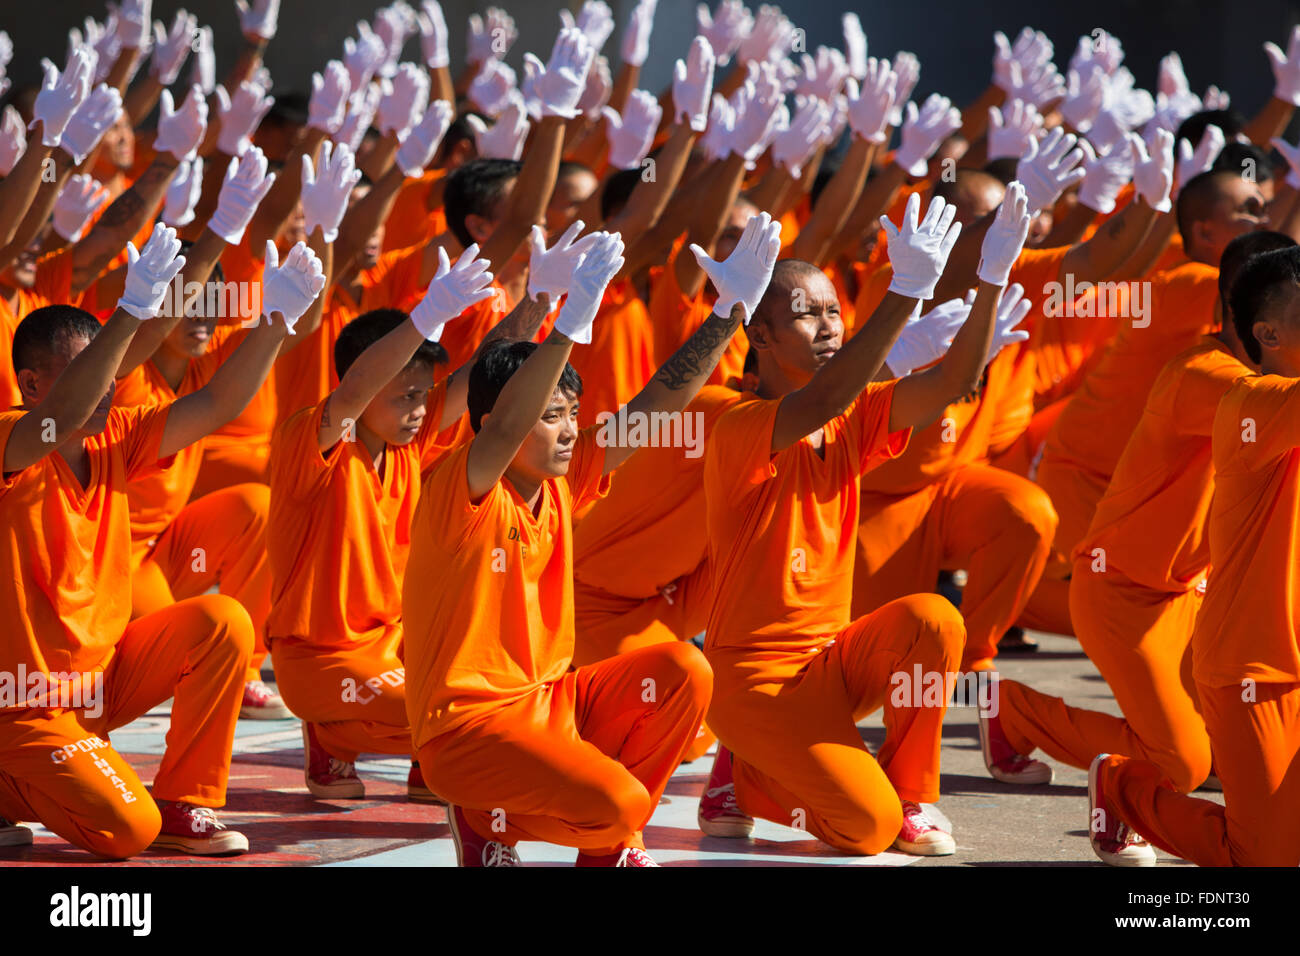 Dancing Inmates of the Cebu Provincial Detention and Rehabilitation Center, Cebu City,Philippines - Stock Image